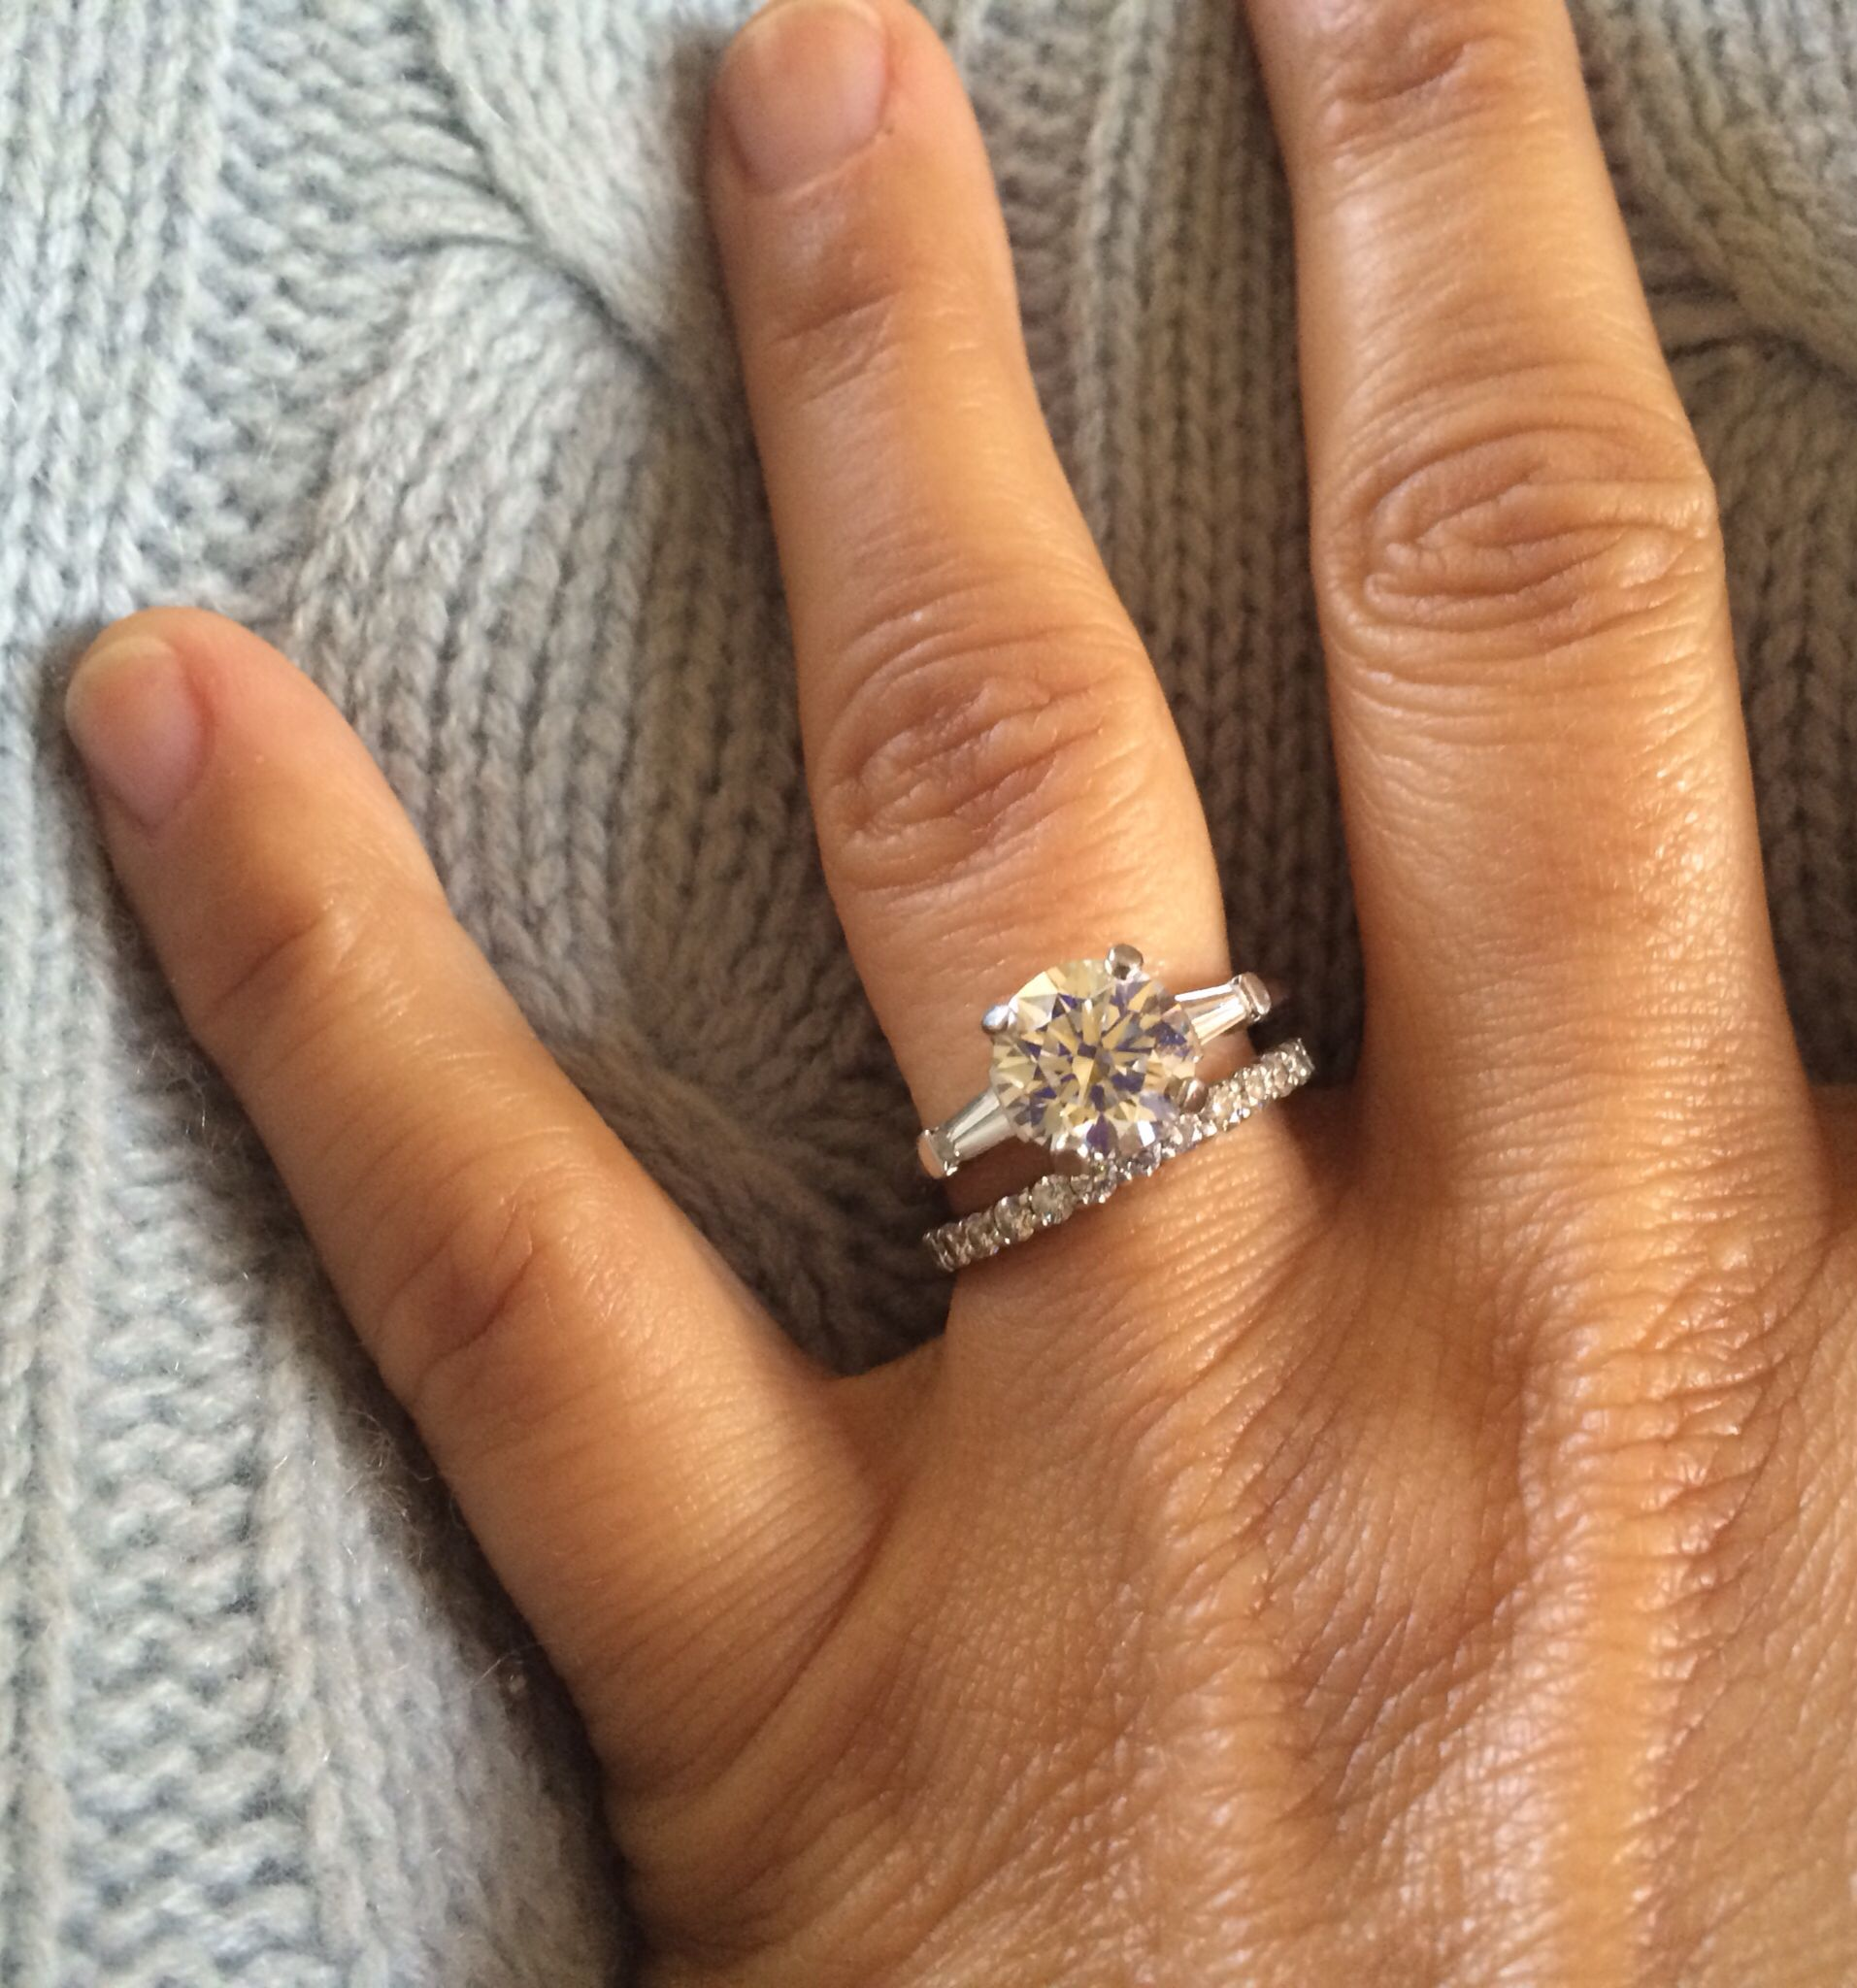 My new ring. Happy 18th anniversary to moi! Happy 18th